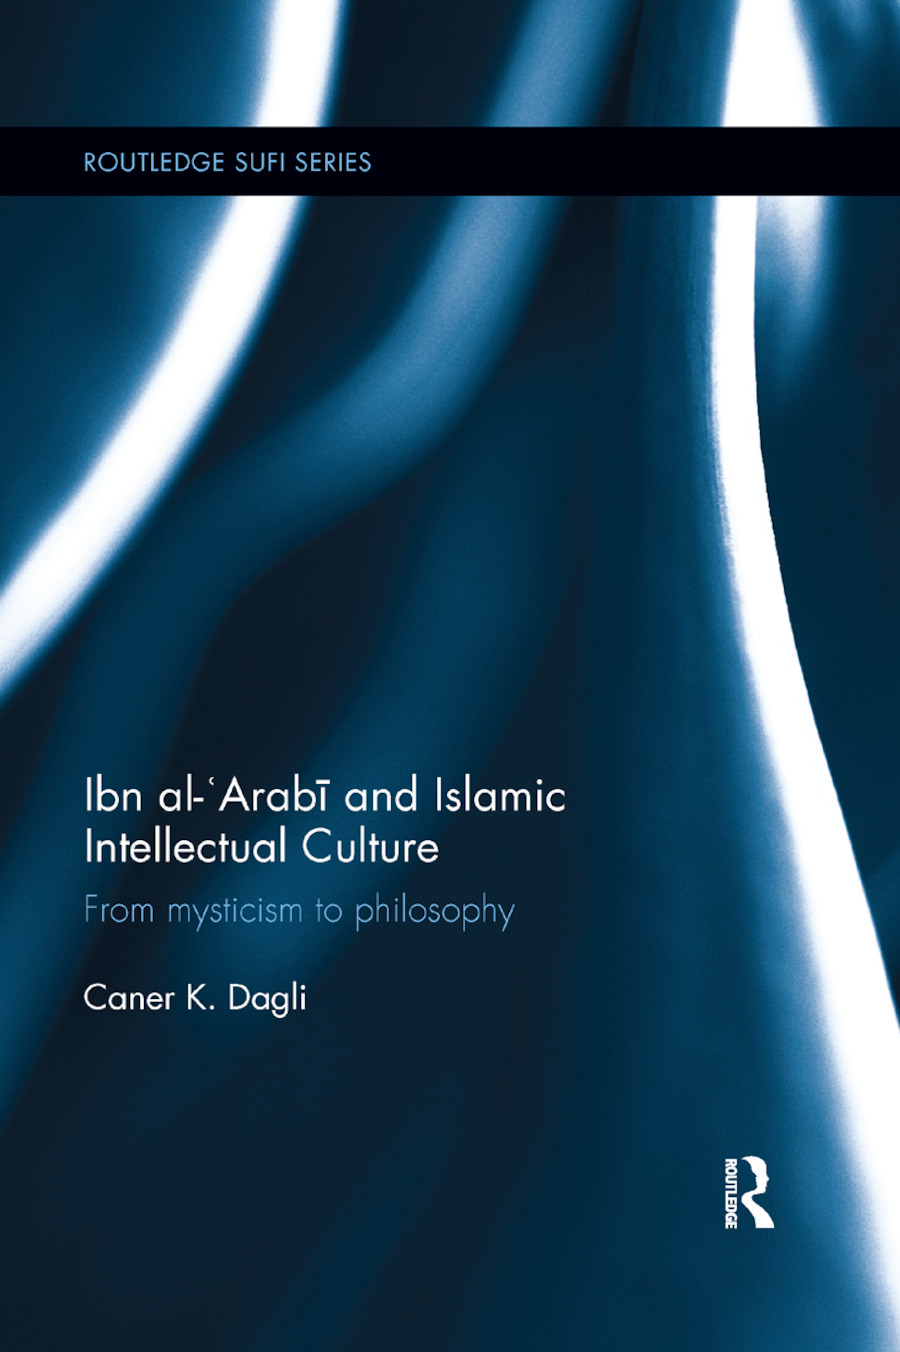 Ibn al-'Arabi and Islamic Intellectual Culture: From Mysticism to Philosophy book cover